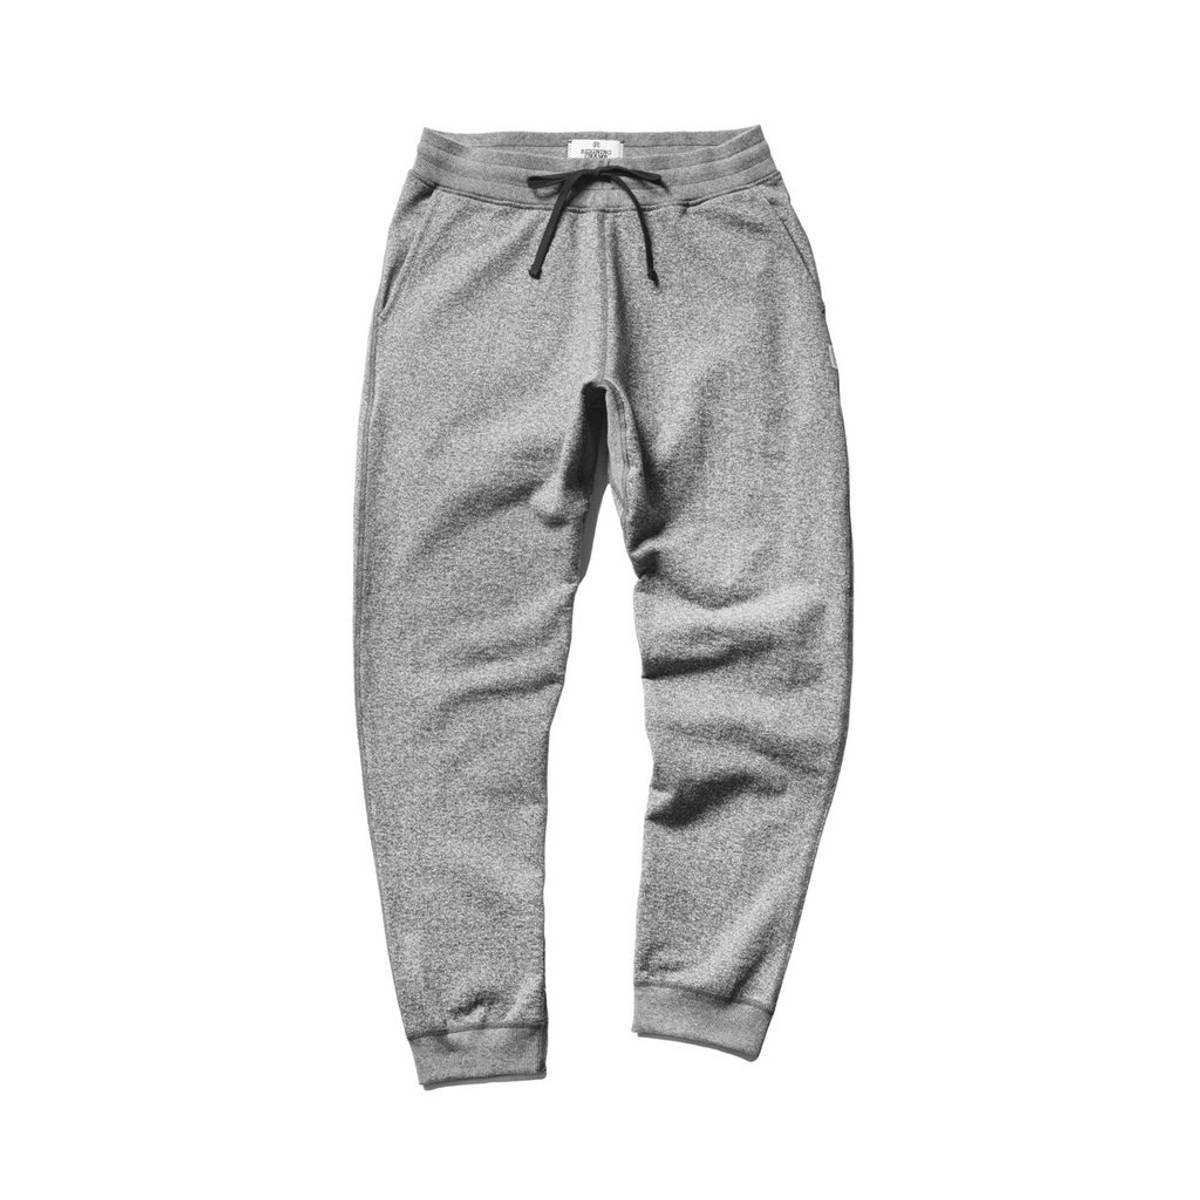 746913749f43 Reigning Champ Heavyweight Terry Slim Sweatpant Size 30 - Sweatpants    Joggers for Sale - Grailed